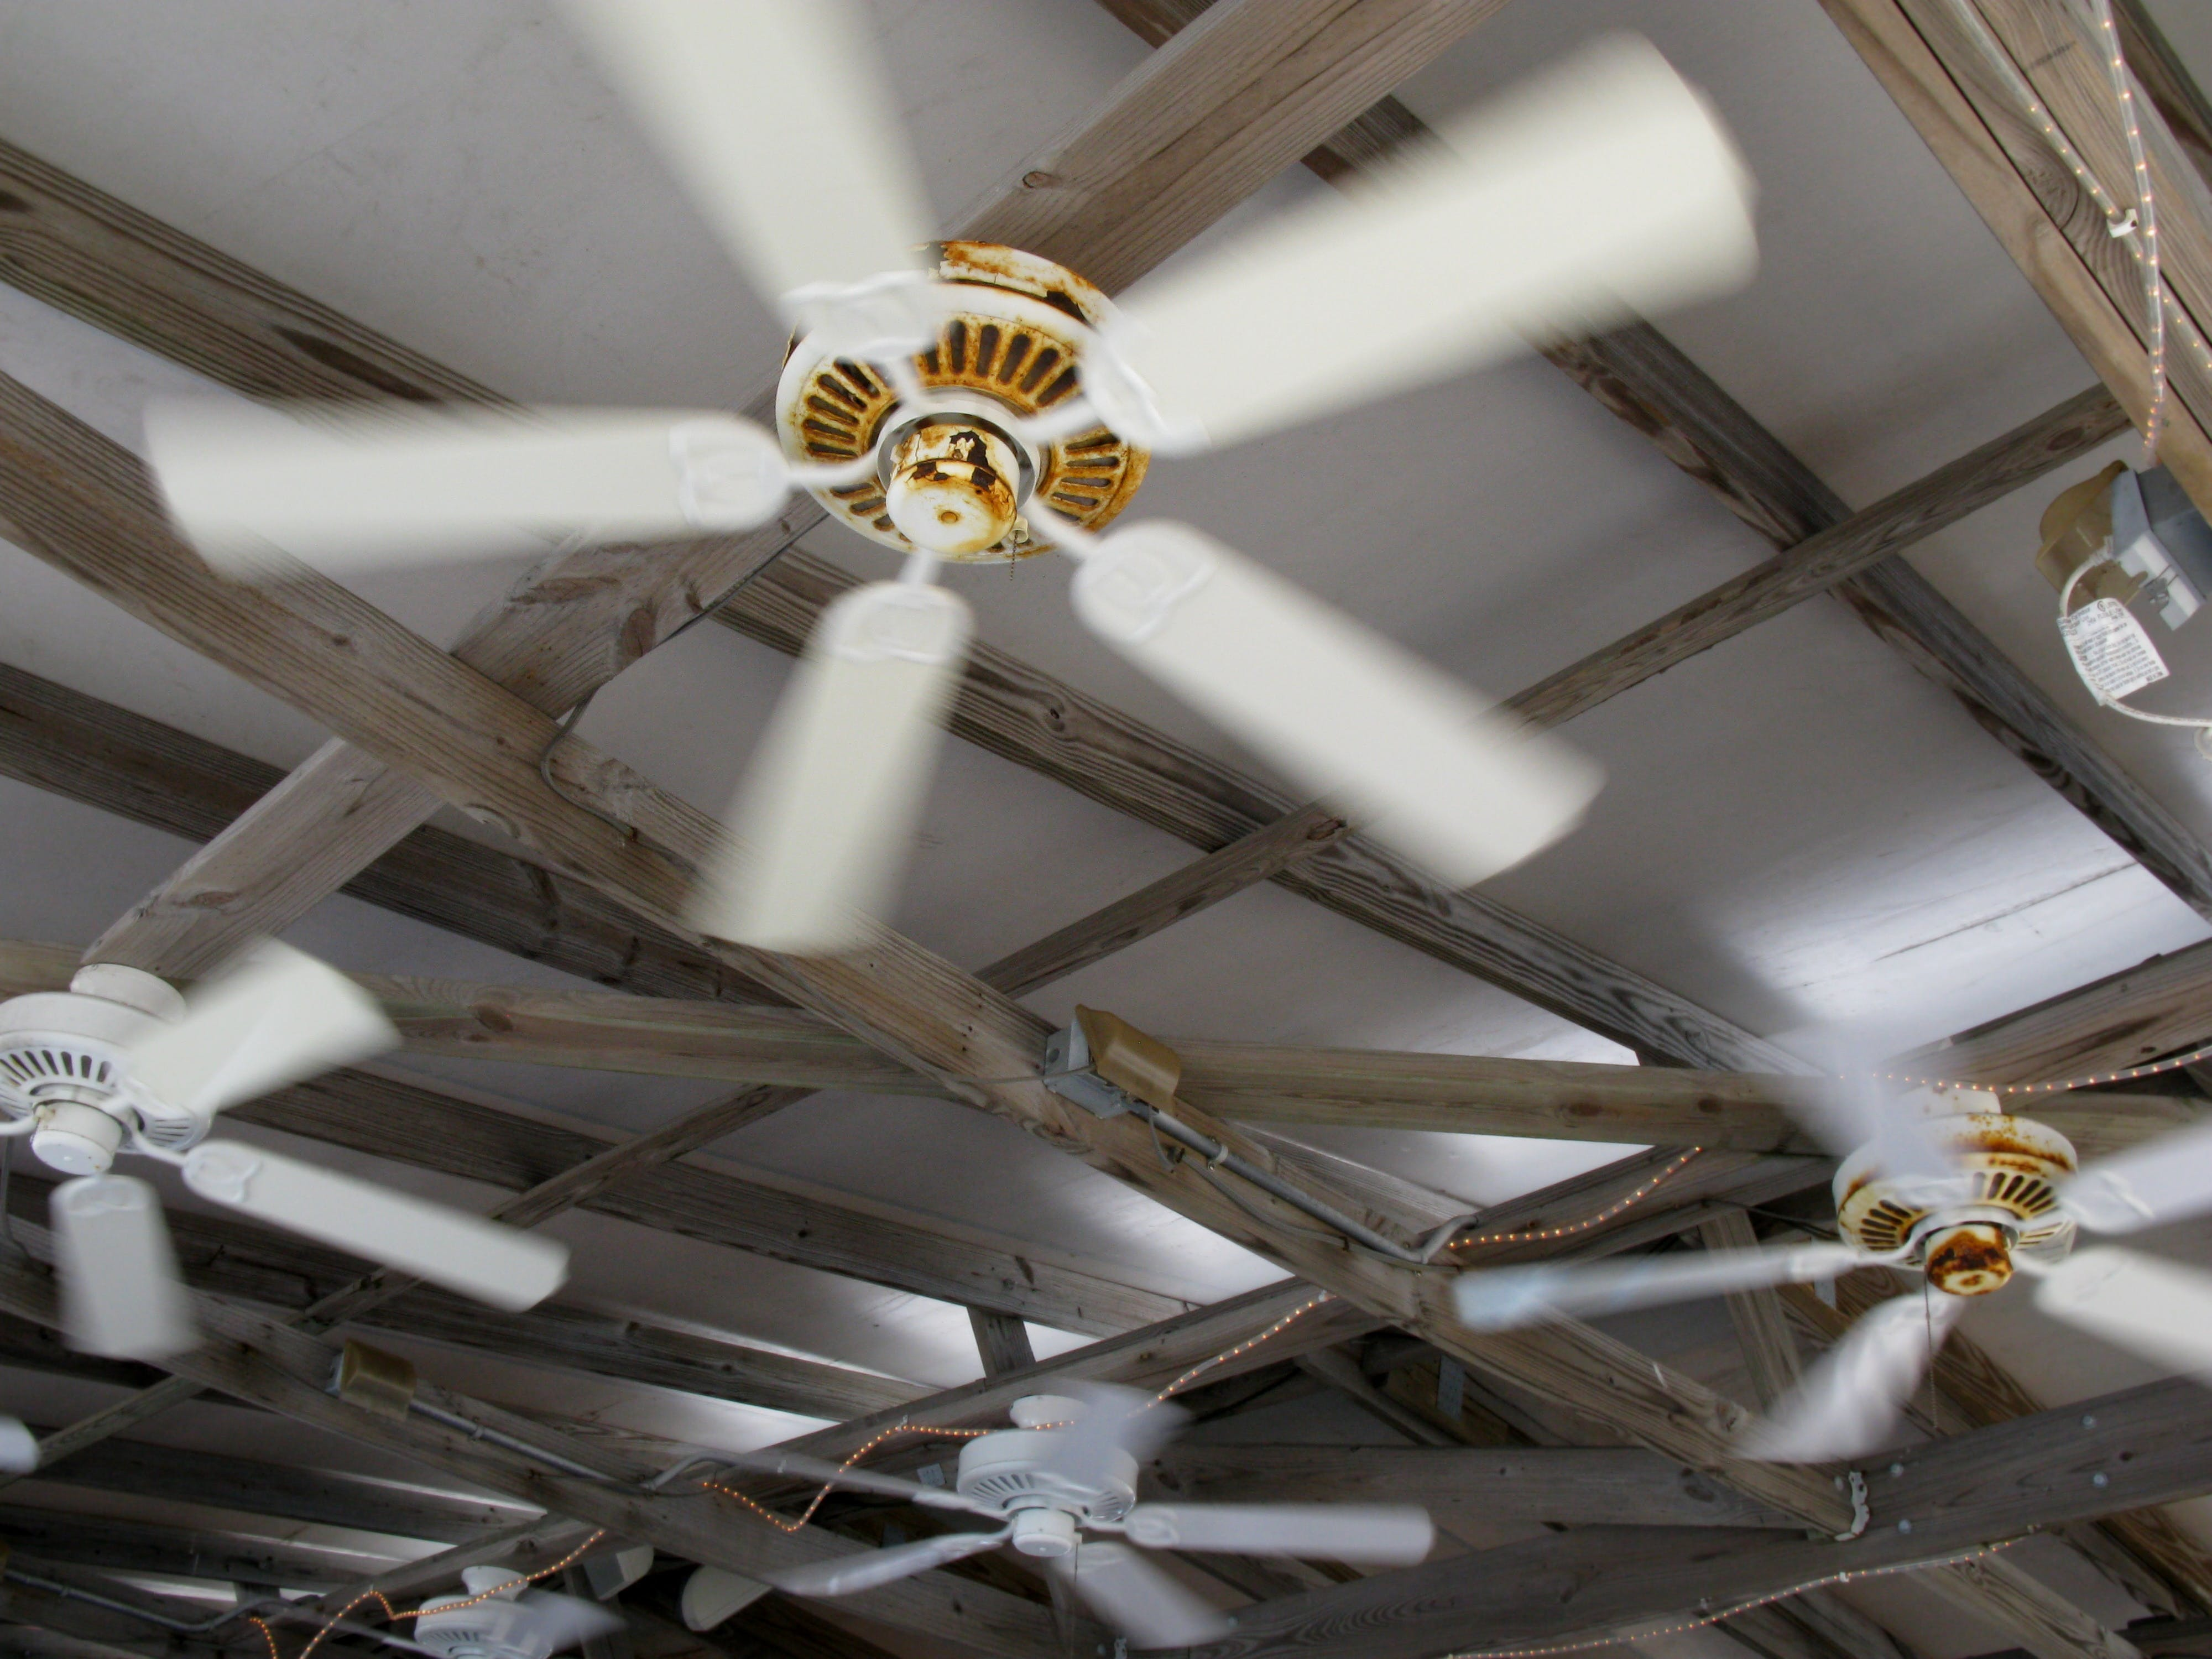 Free stock photo of ceiling fans, fans, outdoor fans